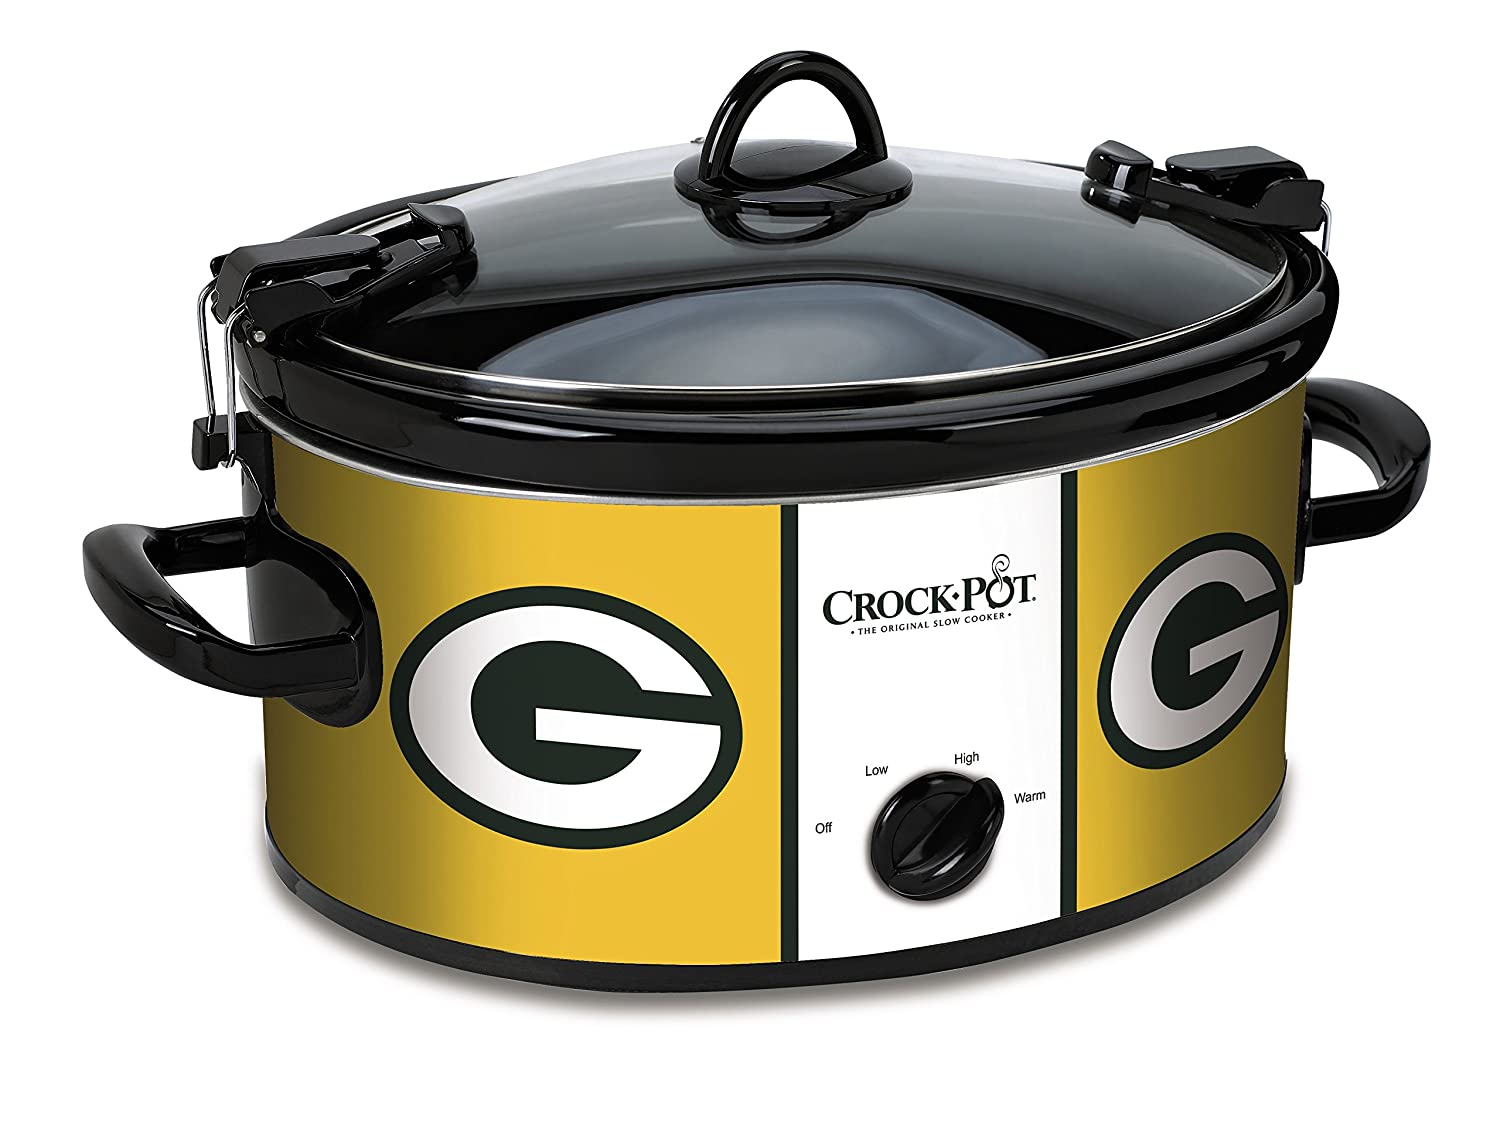 Crock-Pot Green Bay Packers NFL 6-Quart Cook & Carry Slow Cooker